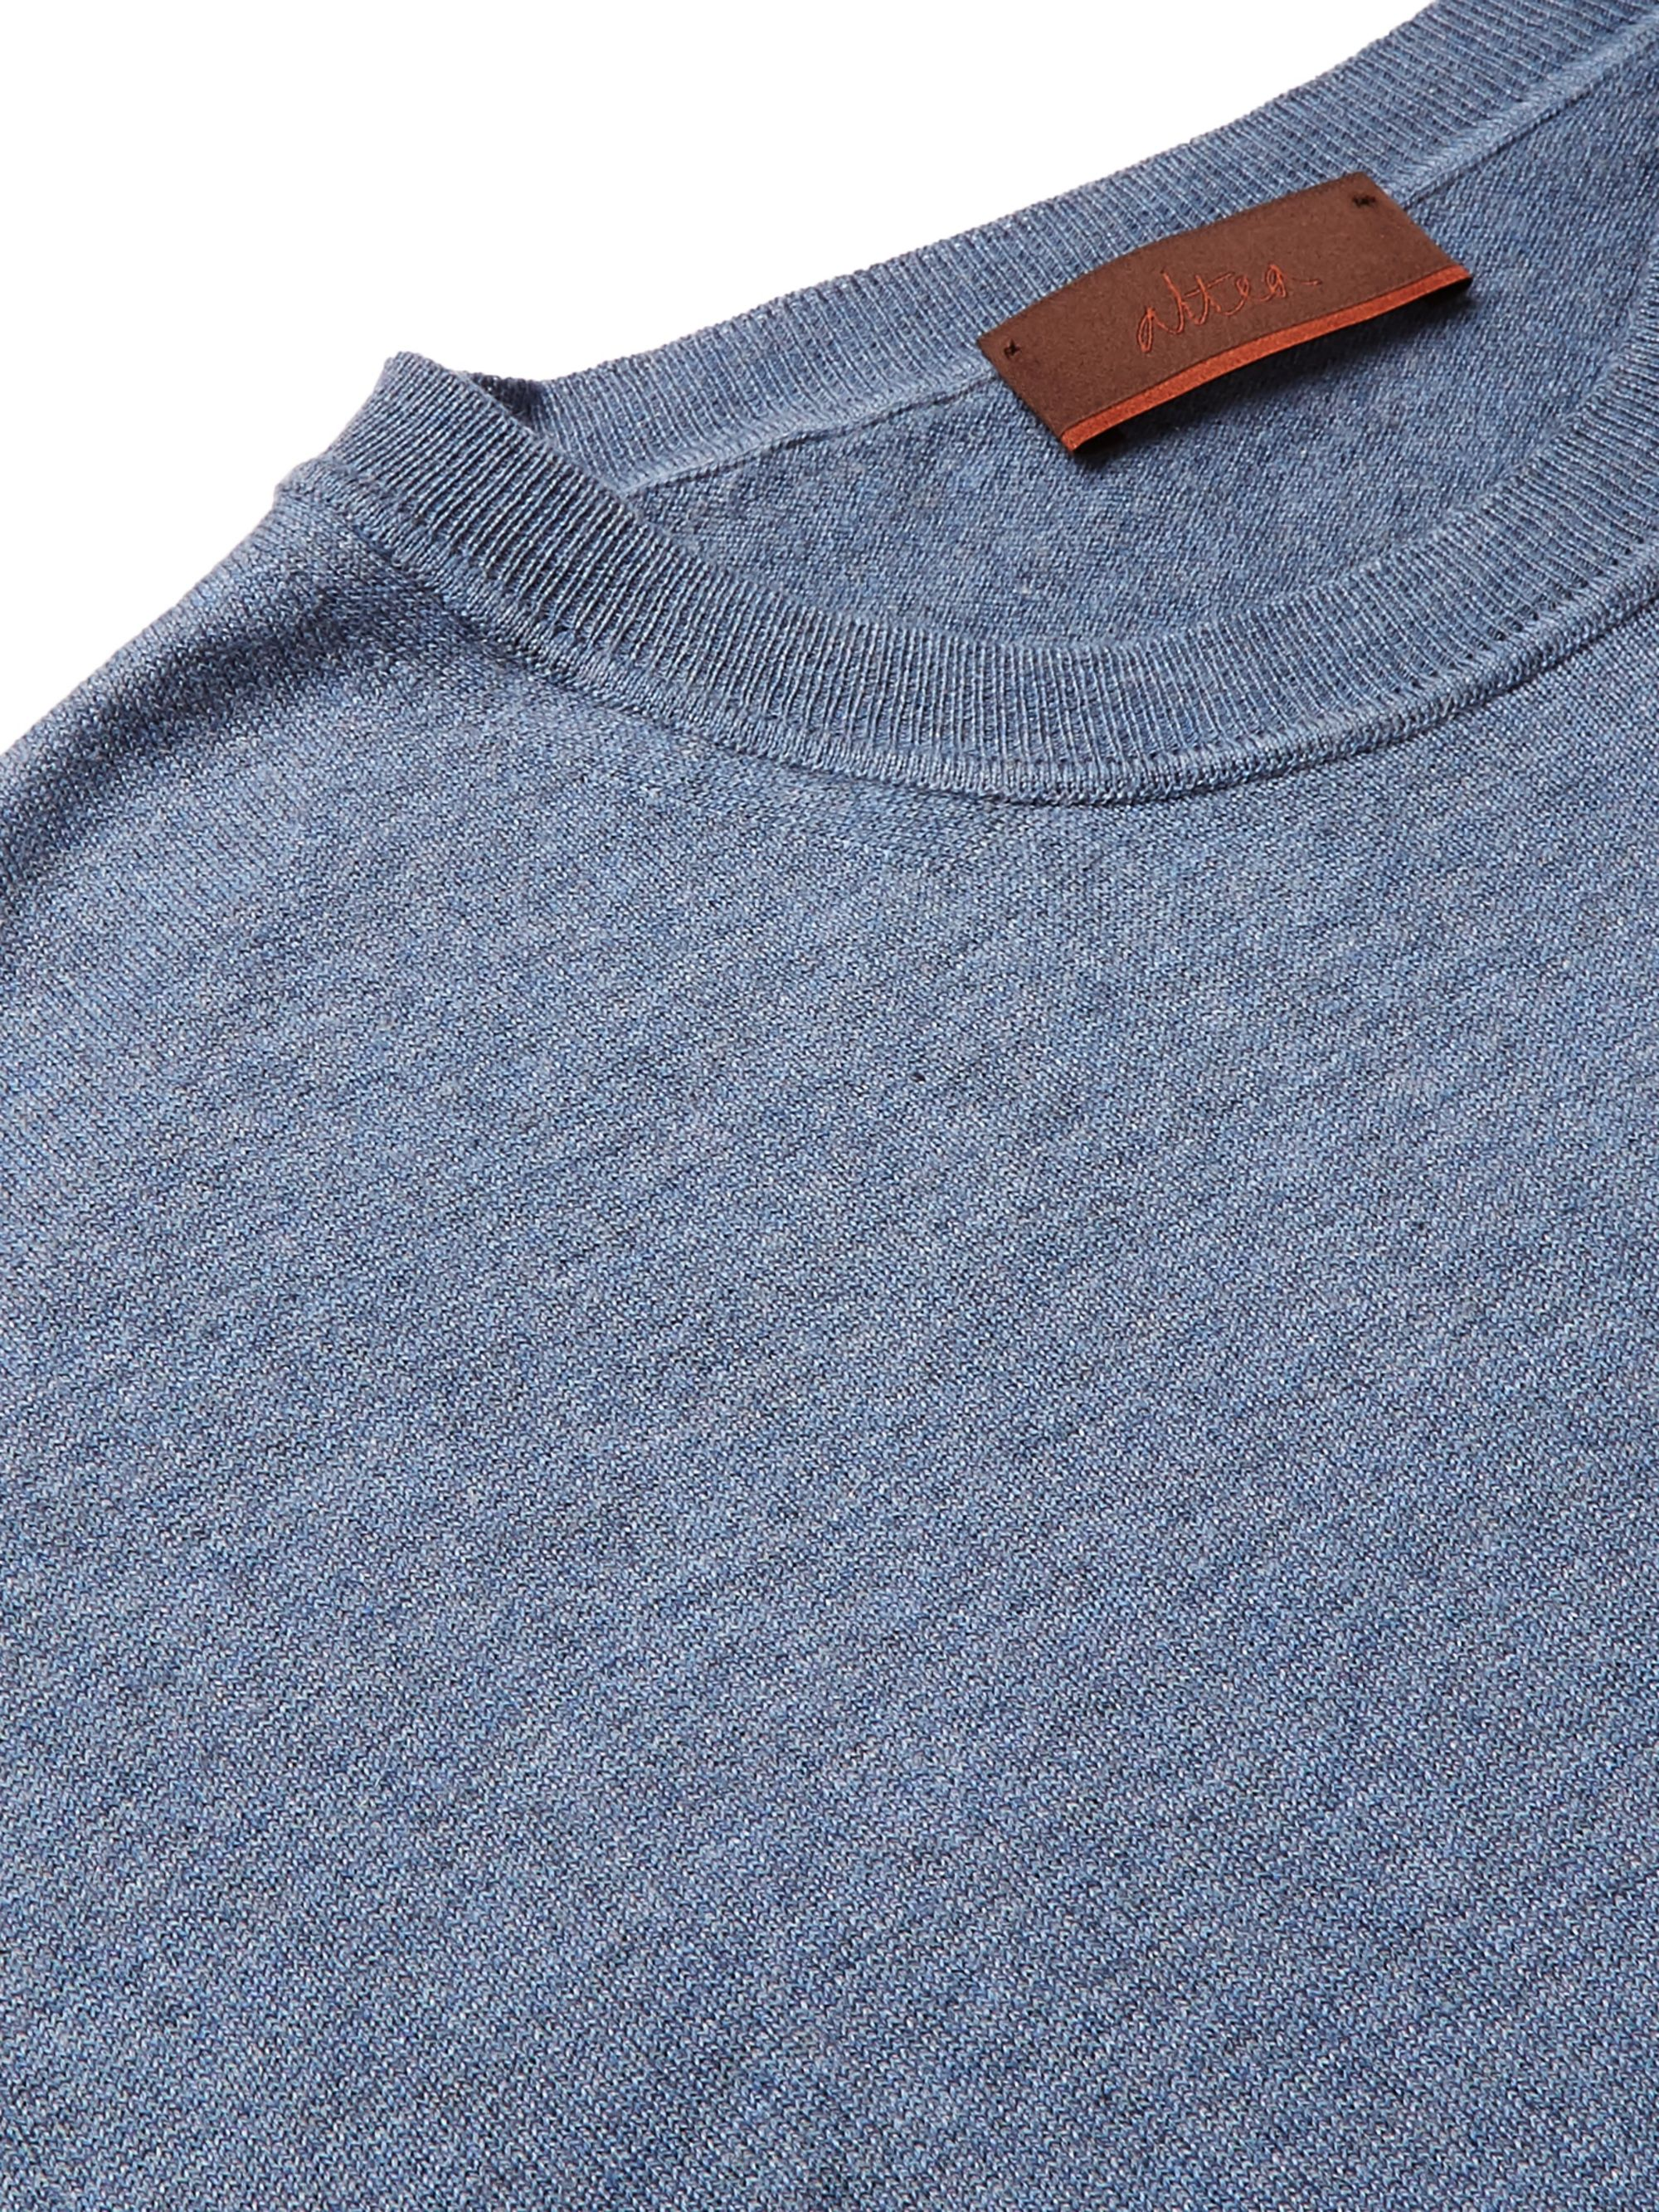 Altea Cotton and Cashmere-Blend Sweater